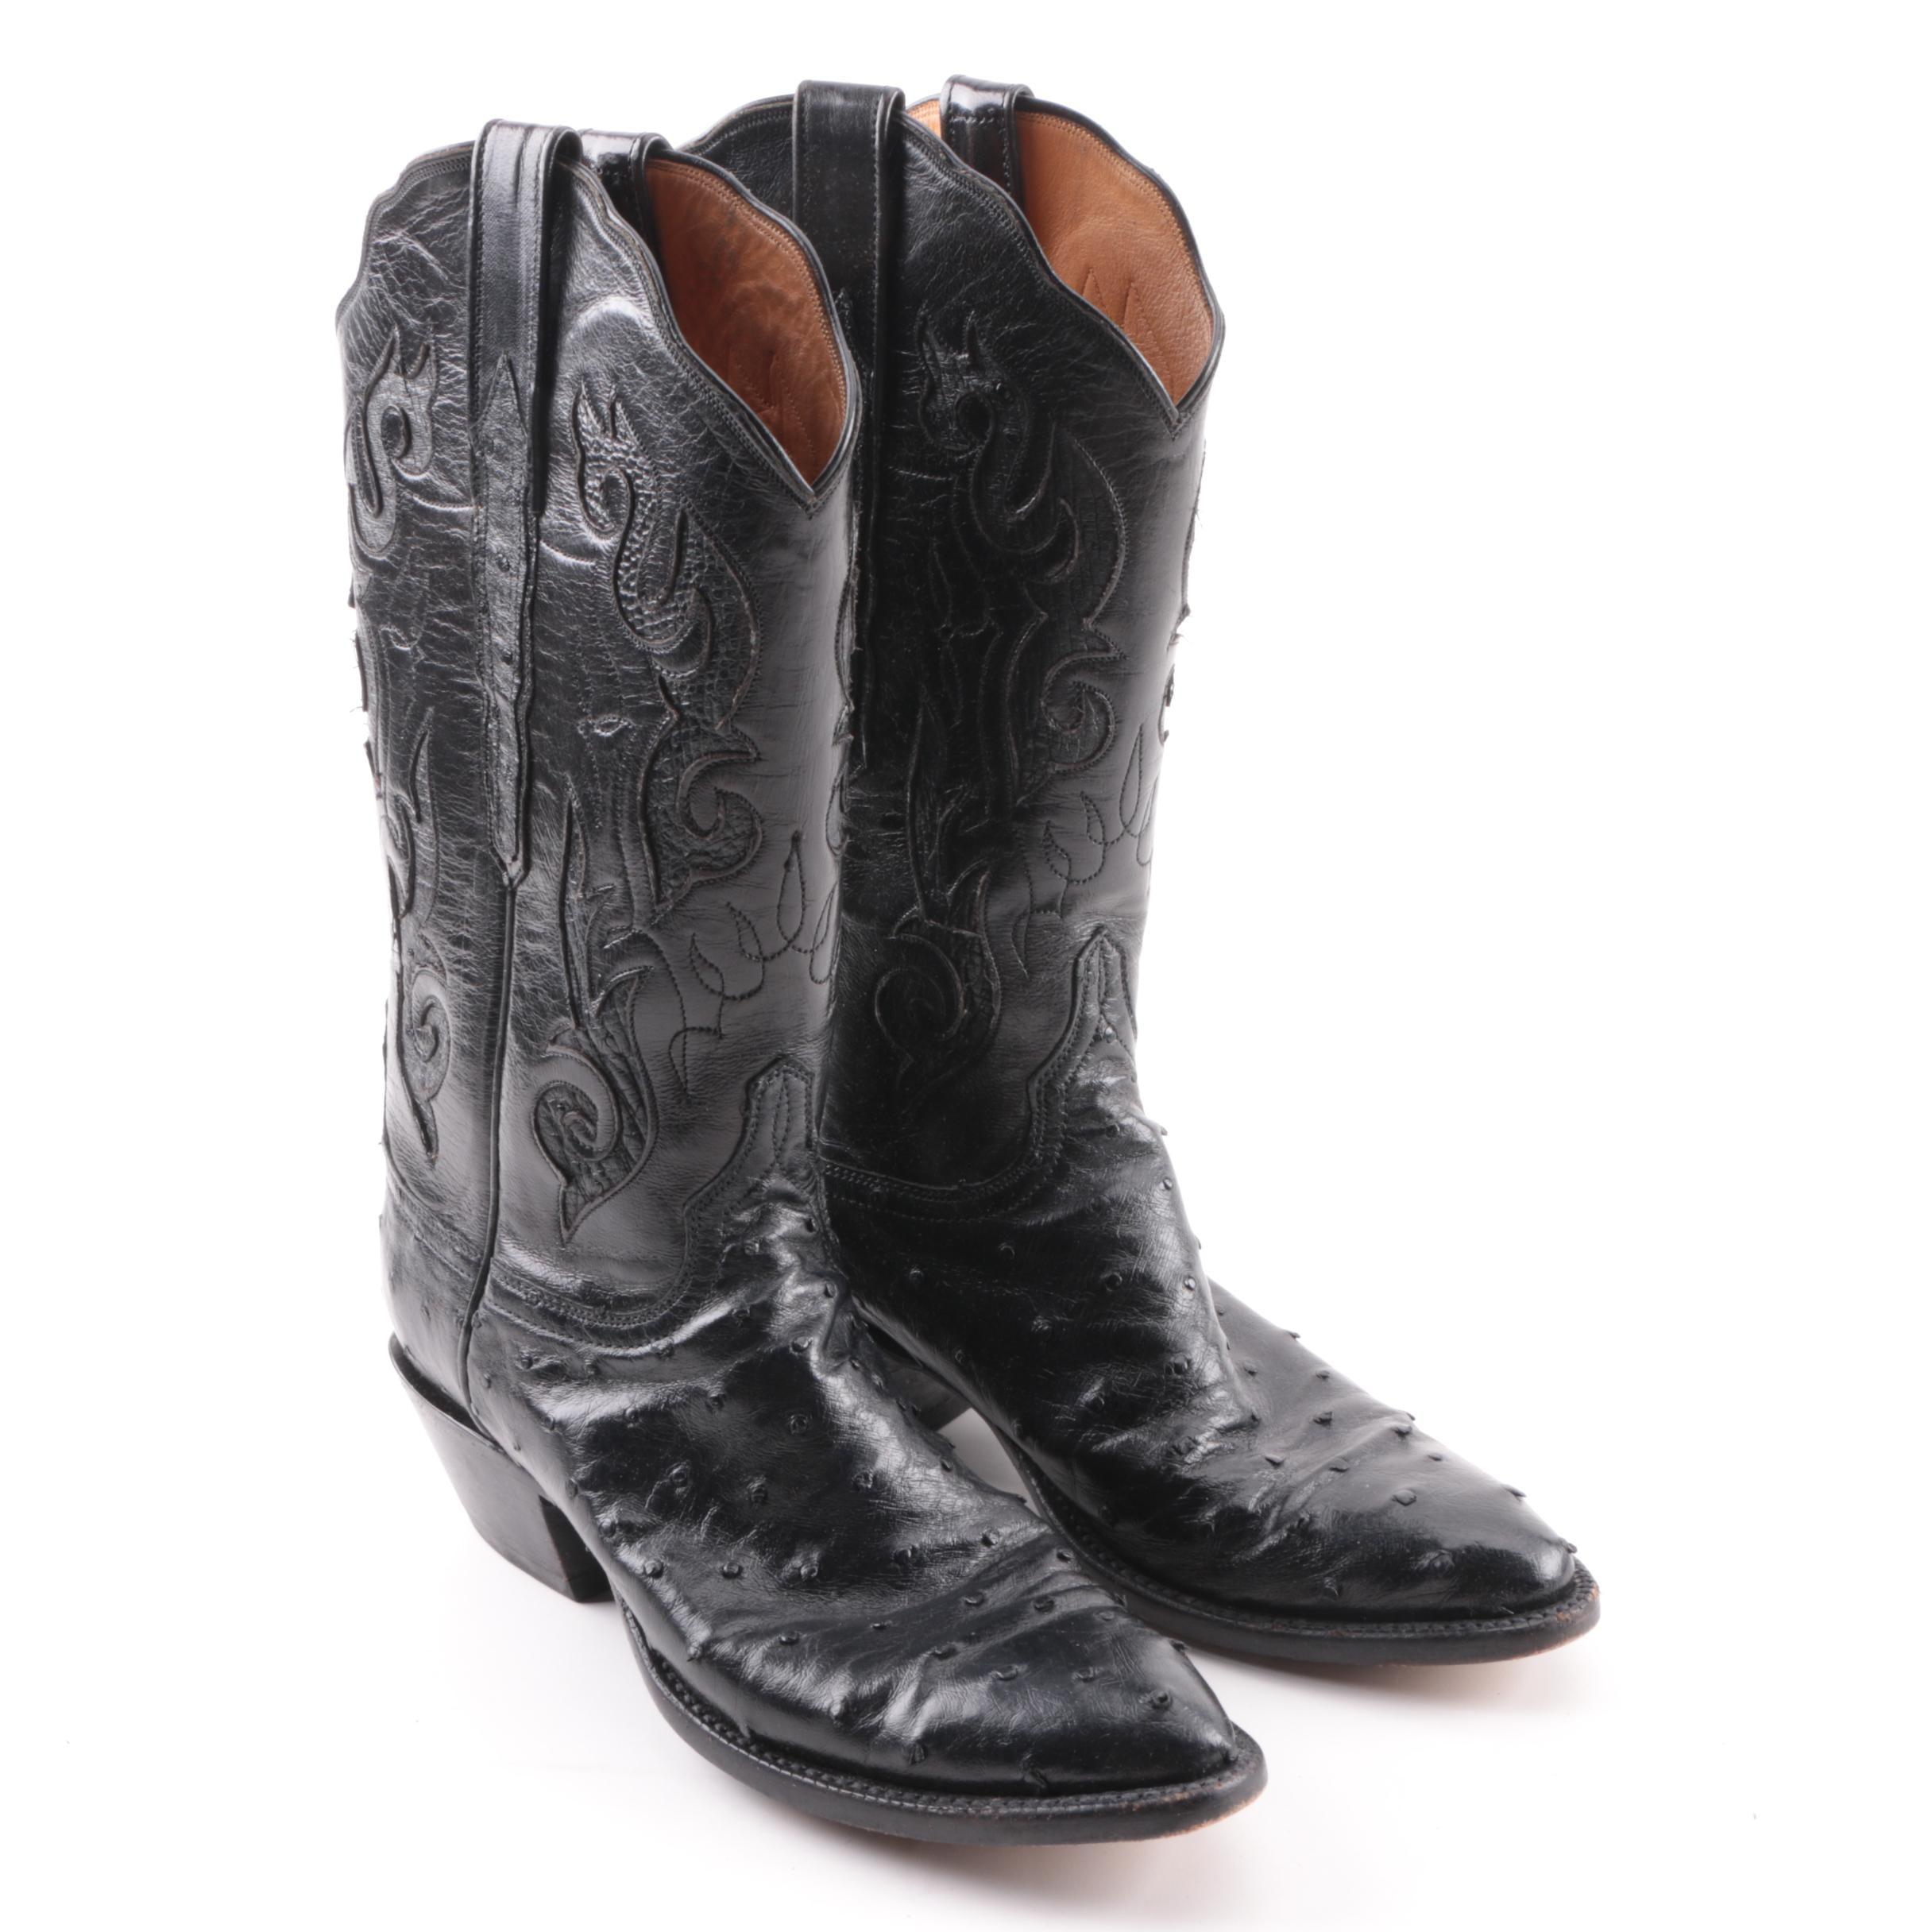 Women's Lucchese Classics Black Leather and Ostrich Skin Western Boots